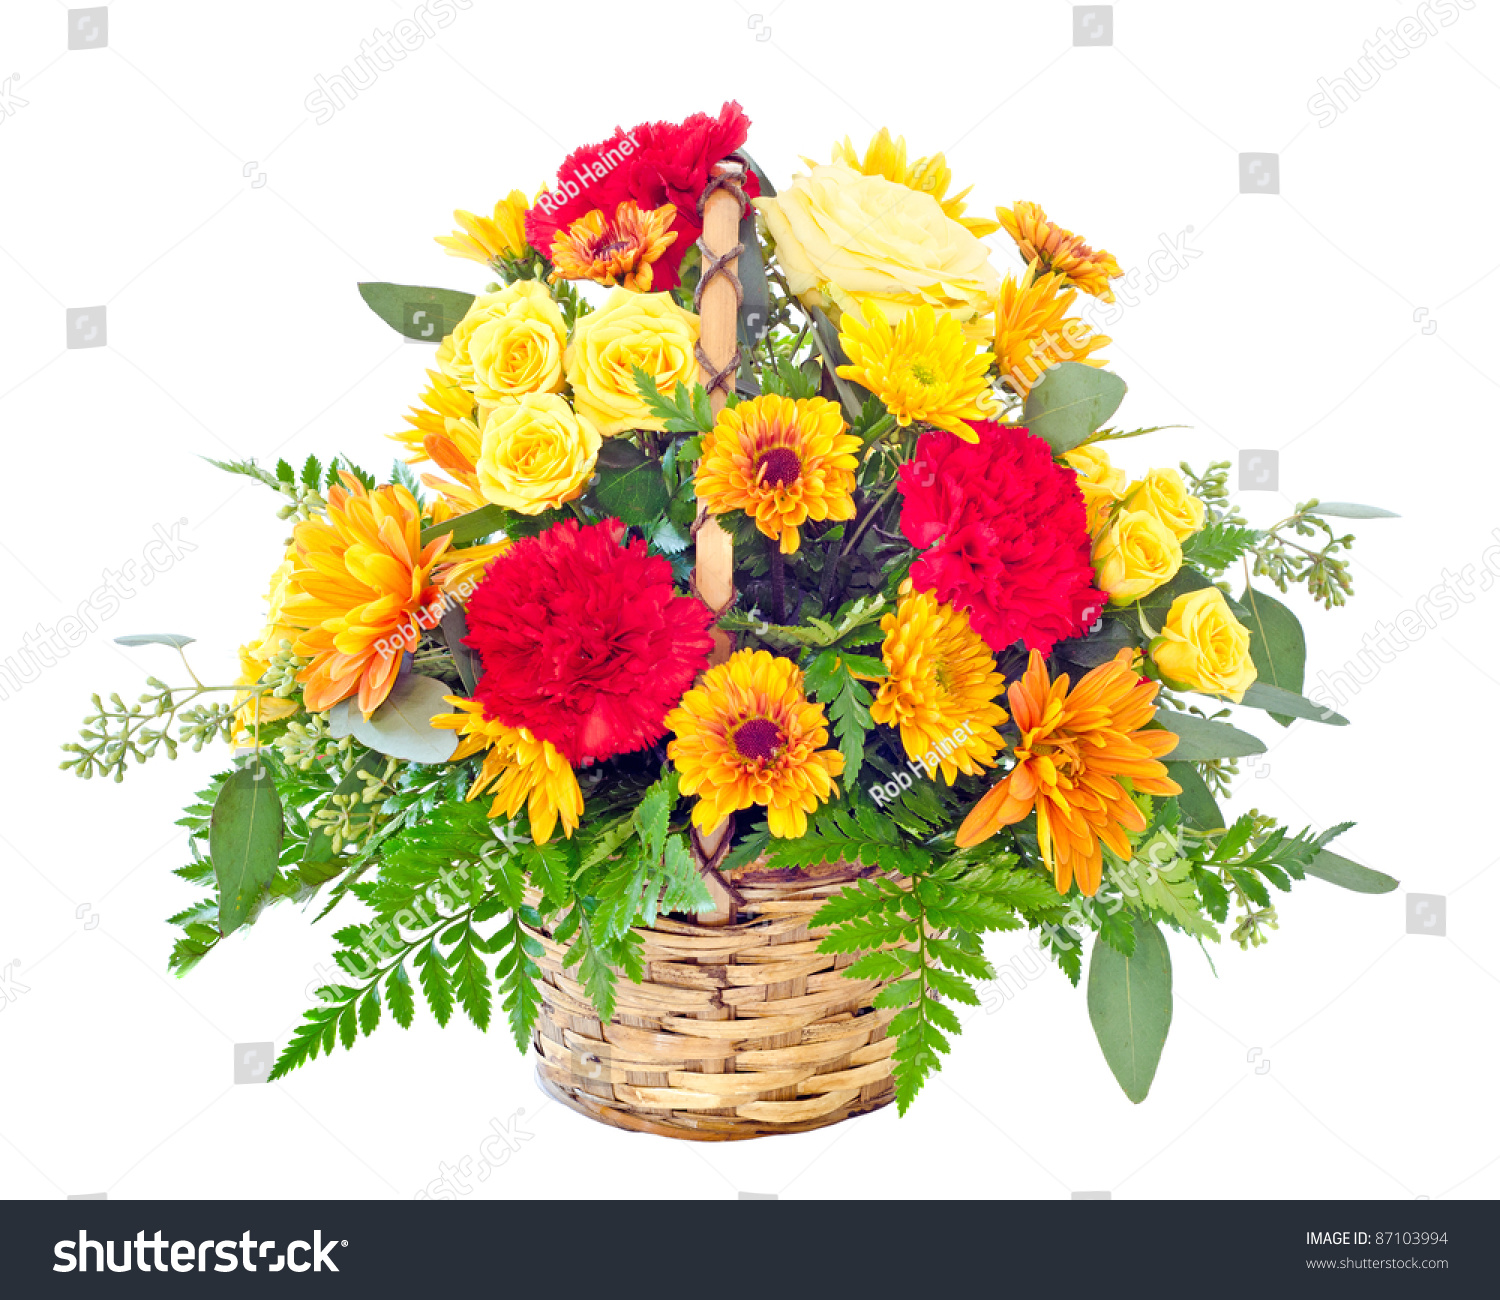 Flower arrangement fall color carnations daisies stock photo flower arrangement with fall color carnations and daisies in basket izmirmasajfo